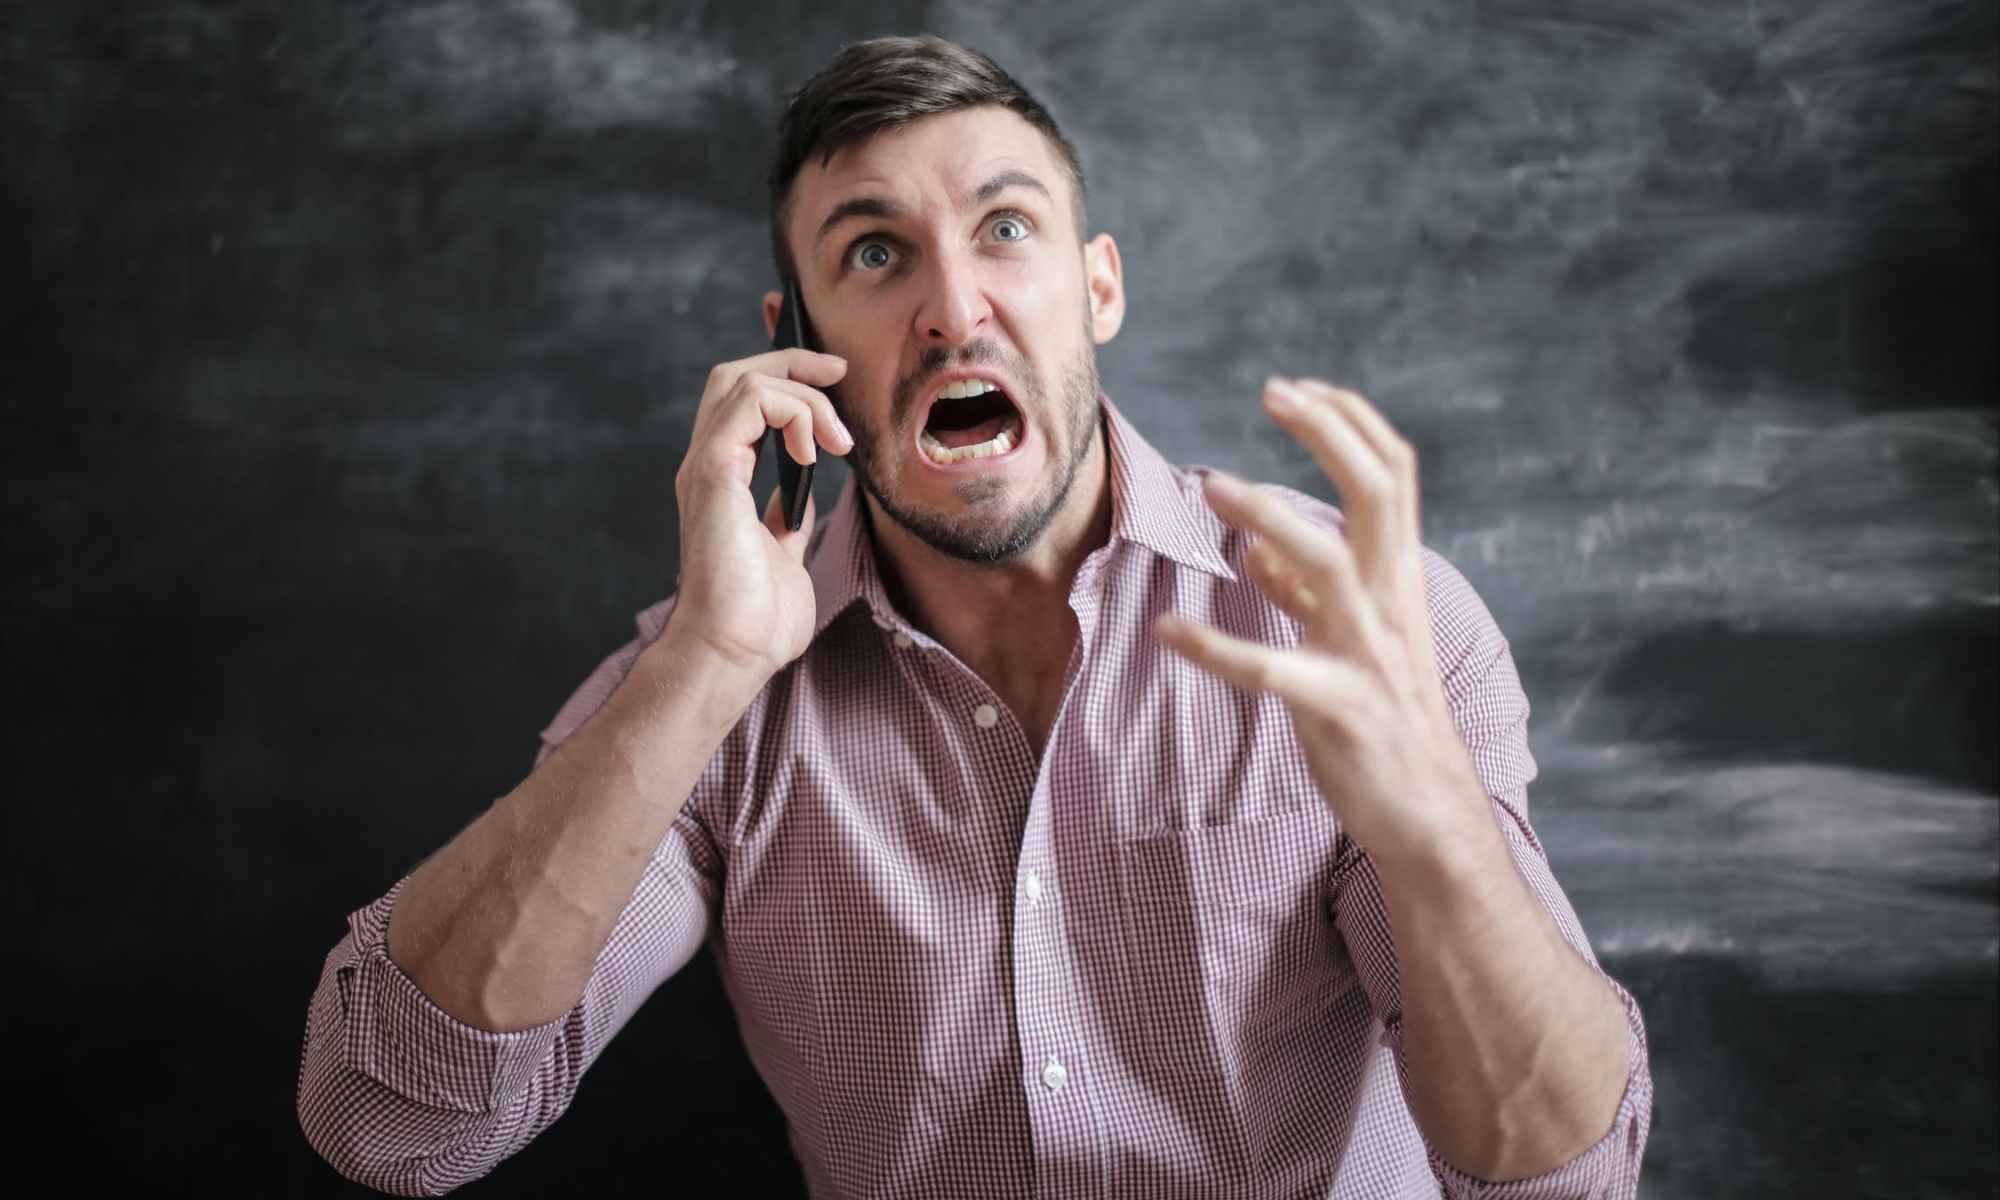 Manic and angry man yelling on cellphone